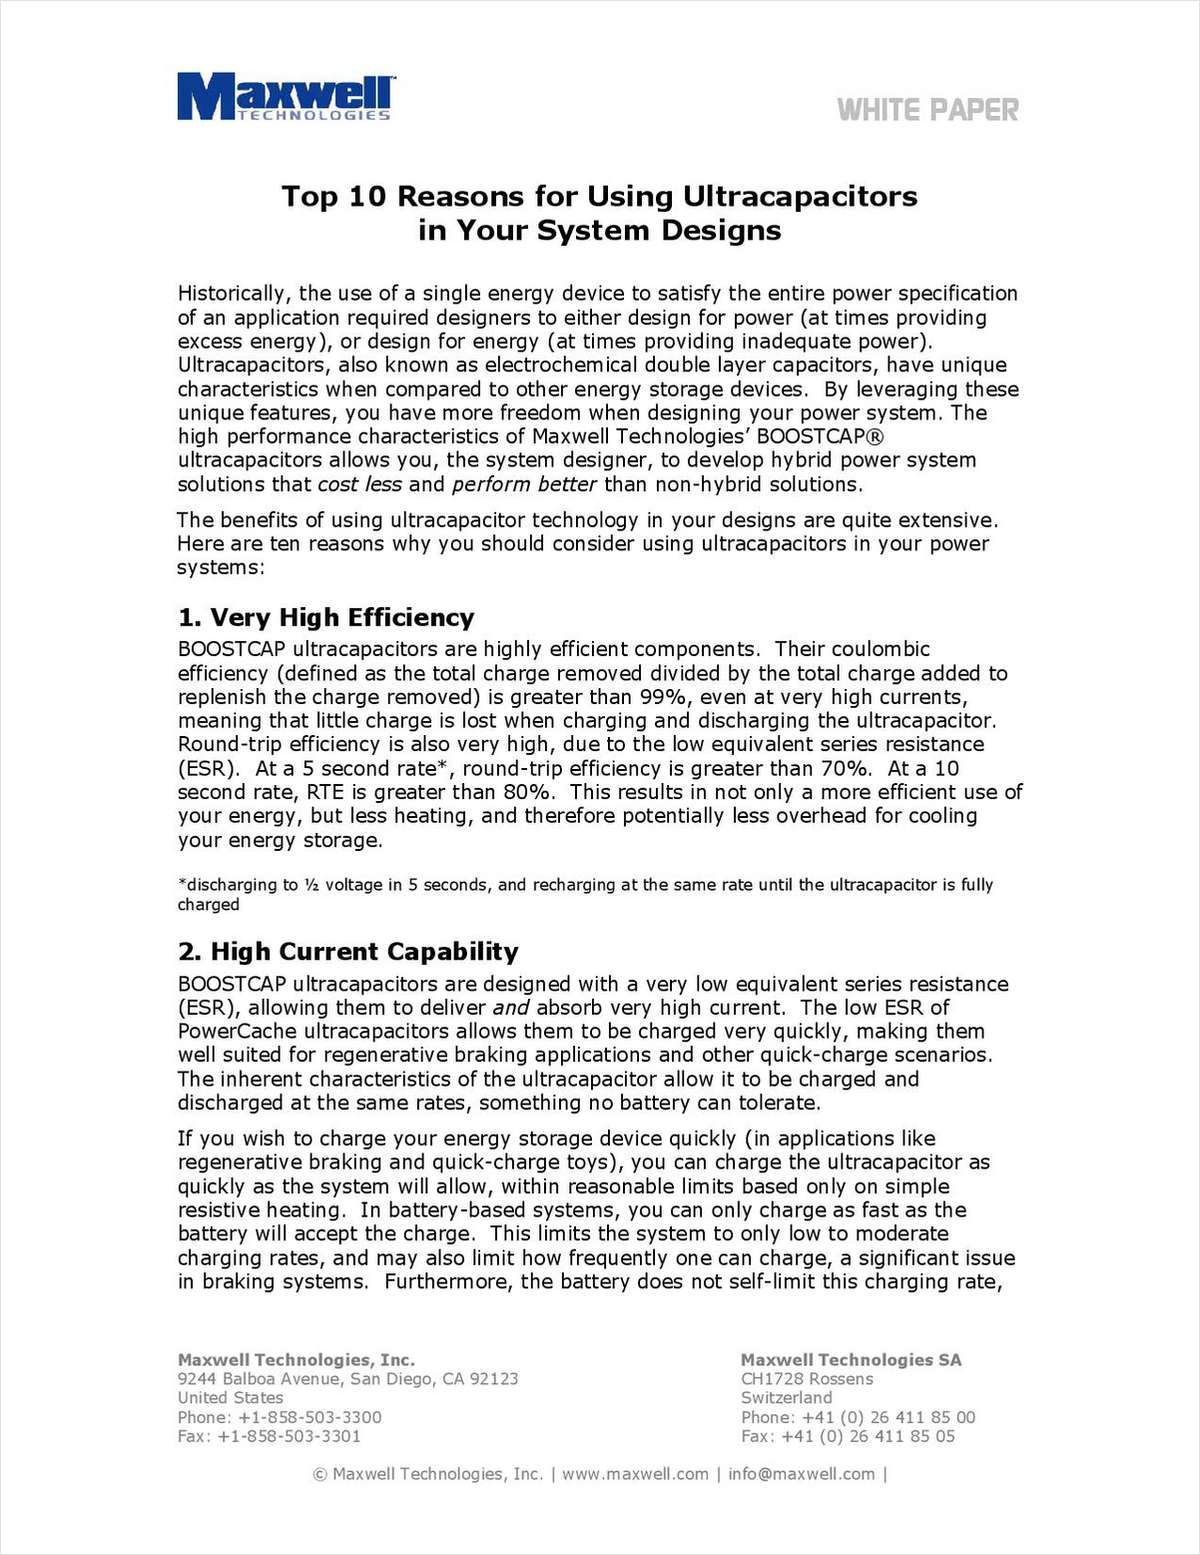 Top 10 Reasons for Using Ultracapacitors in Your System Design